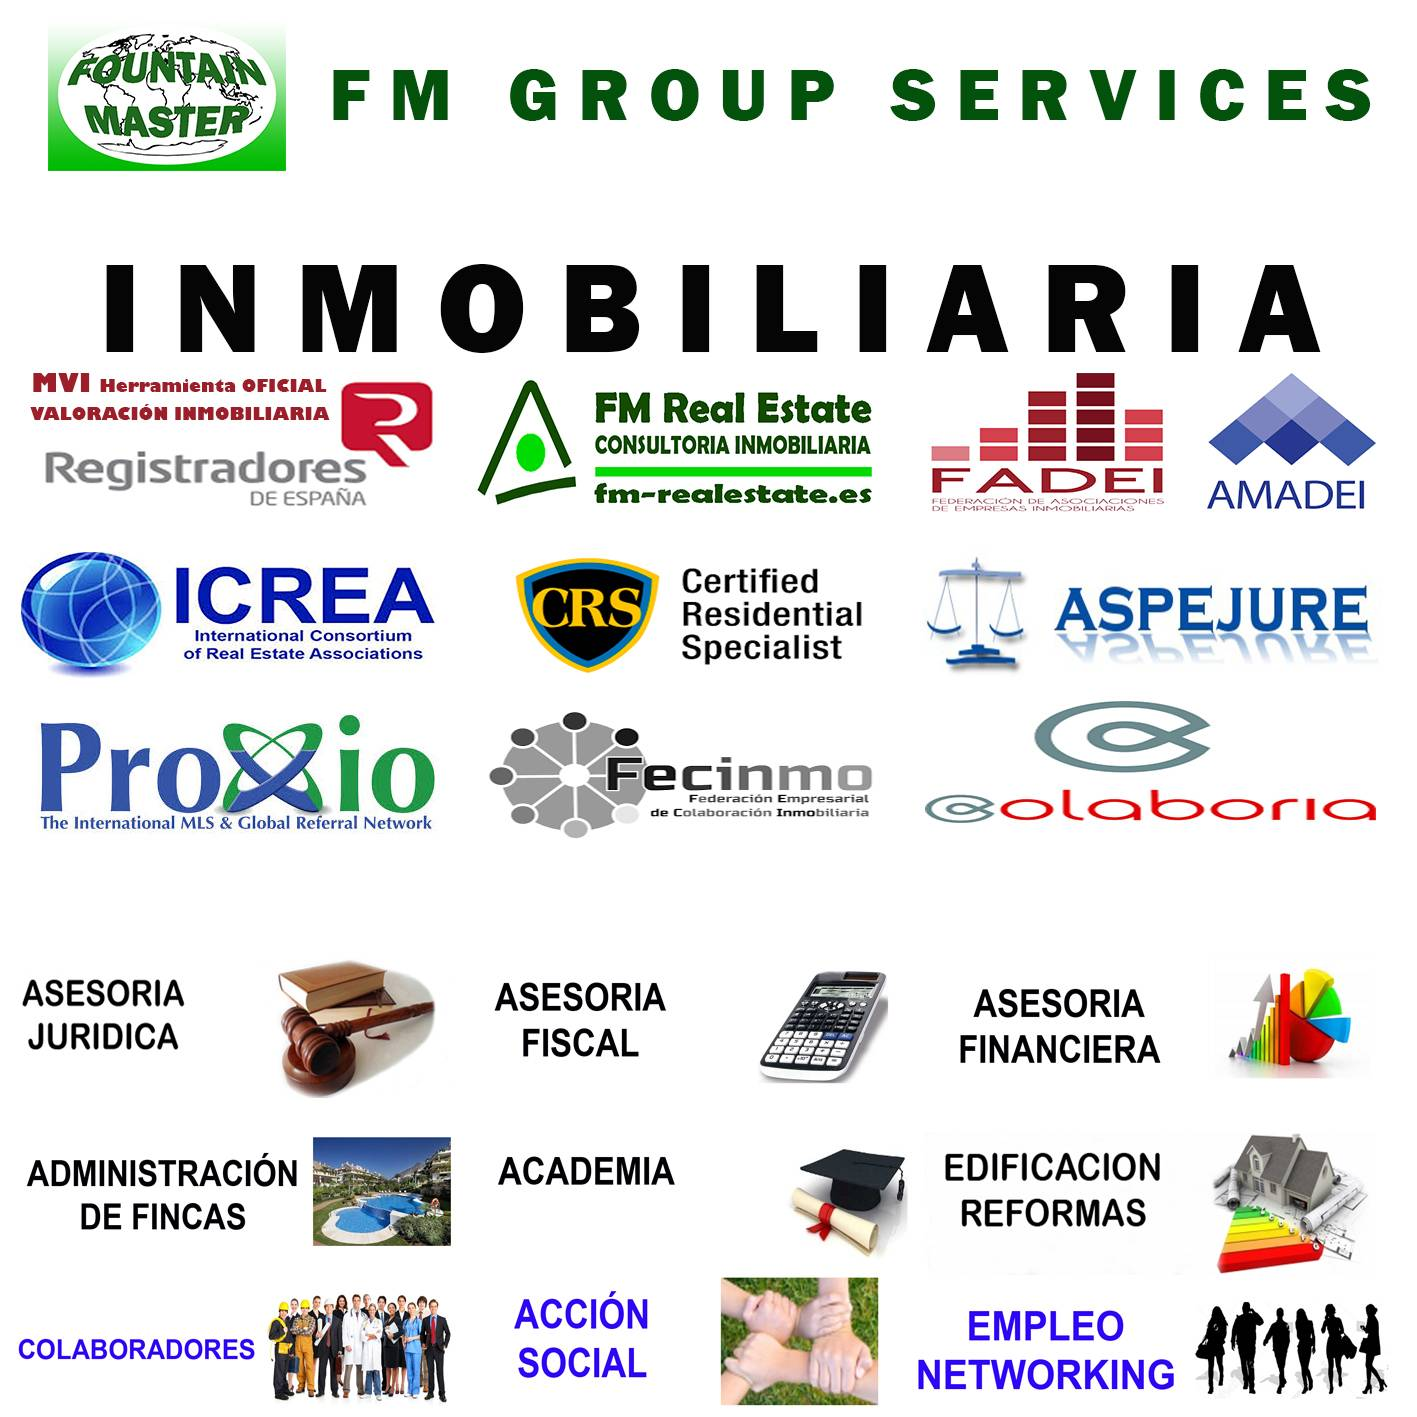 FM Group Services